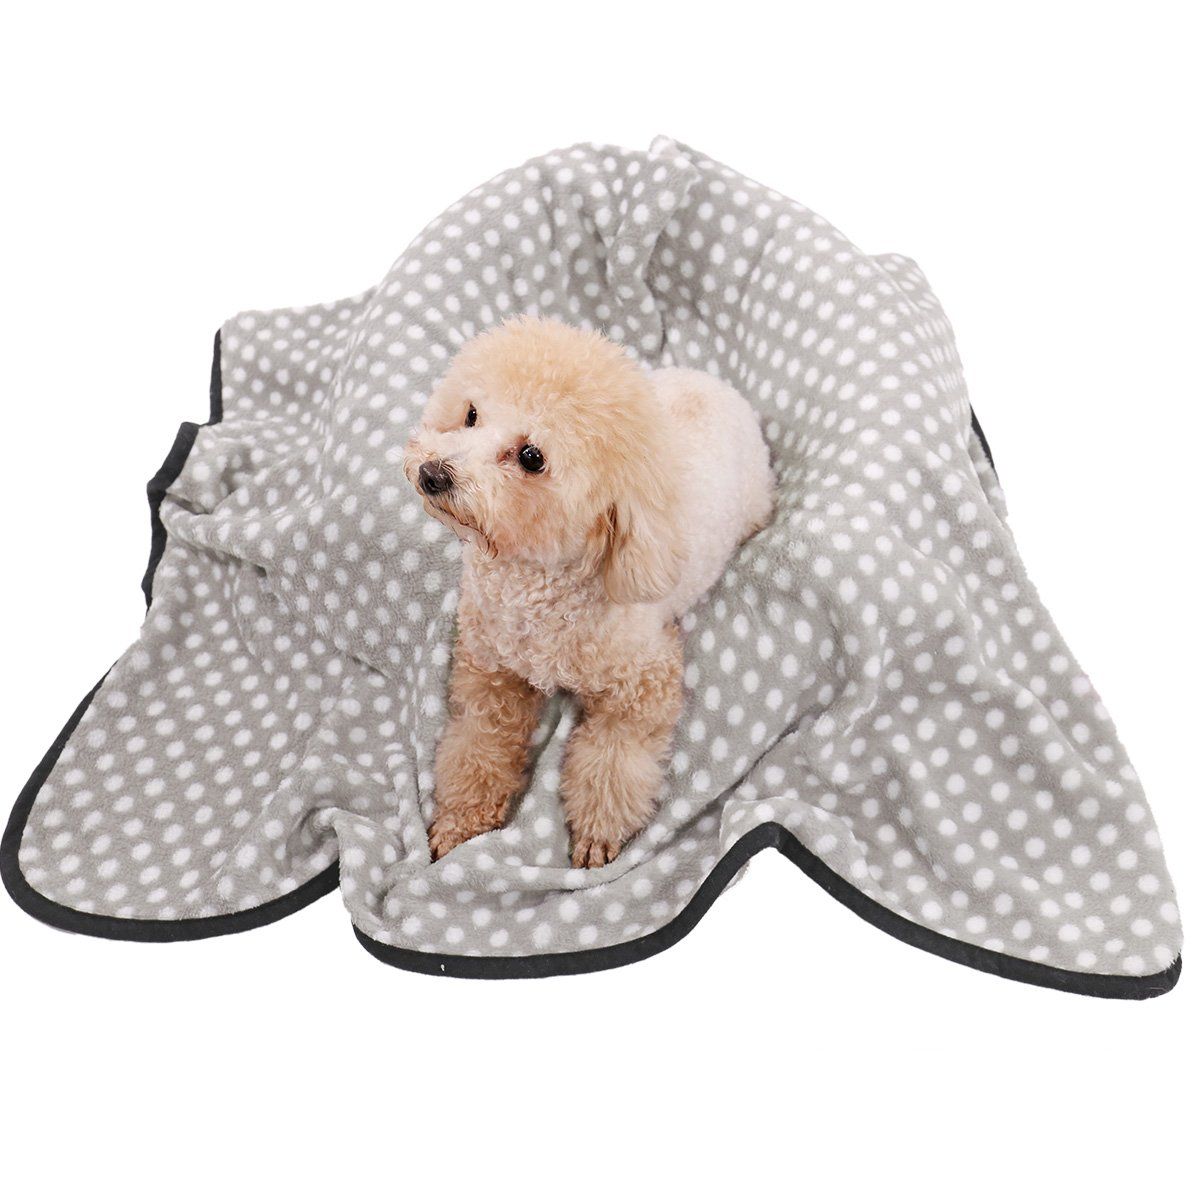 Ohana Elegant Pet Blanket for Dogs and Cats,Soft and Warm Puppy Sleep Mat Fleece Bed Covers for Bed, Couch, Car, Crate and Carrier Bag Grey M